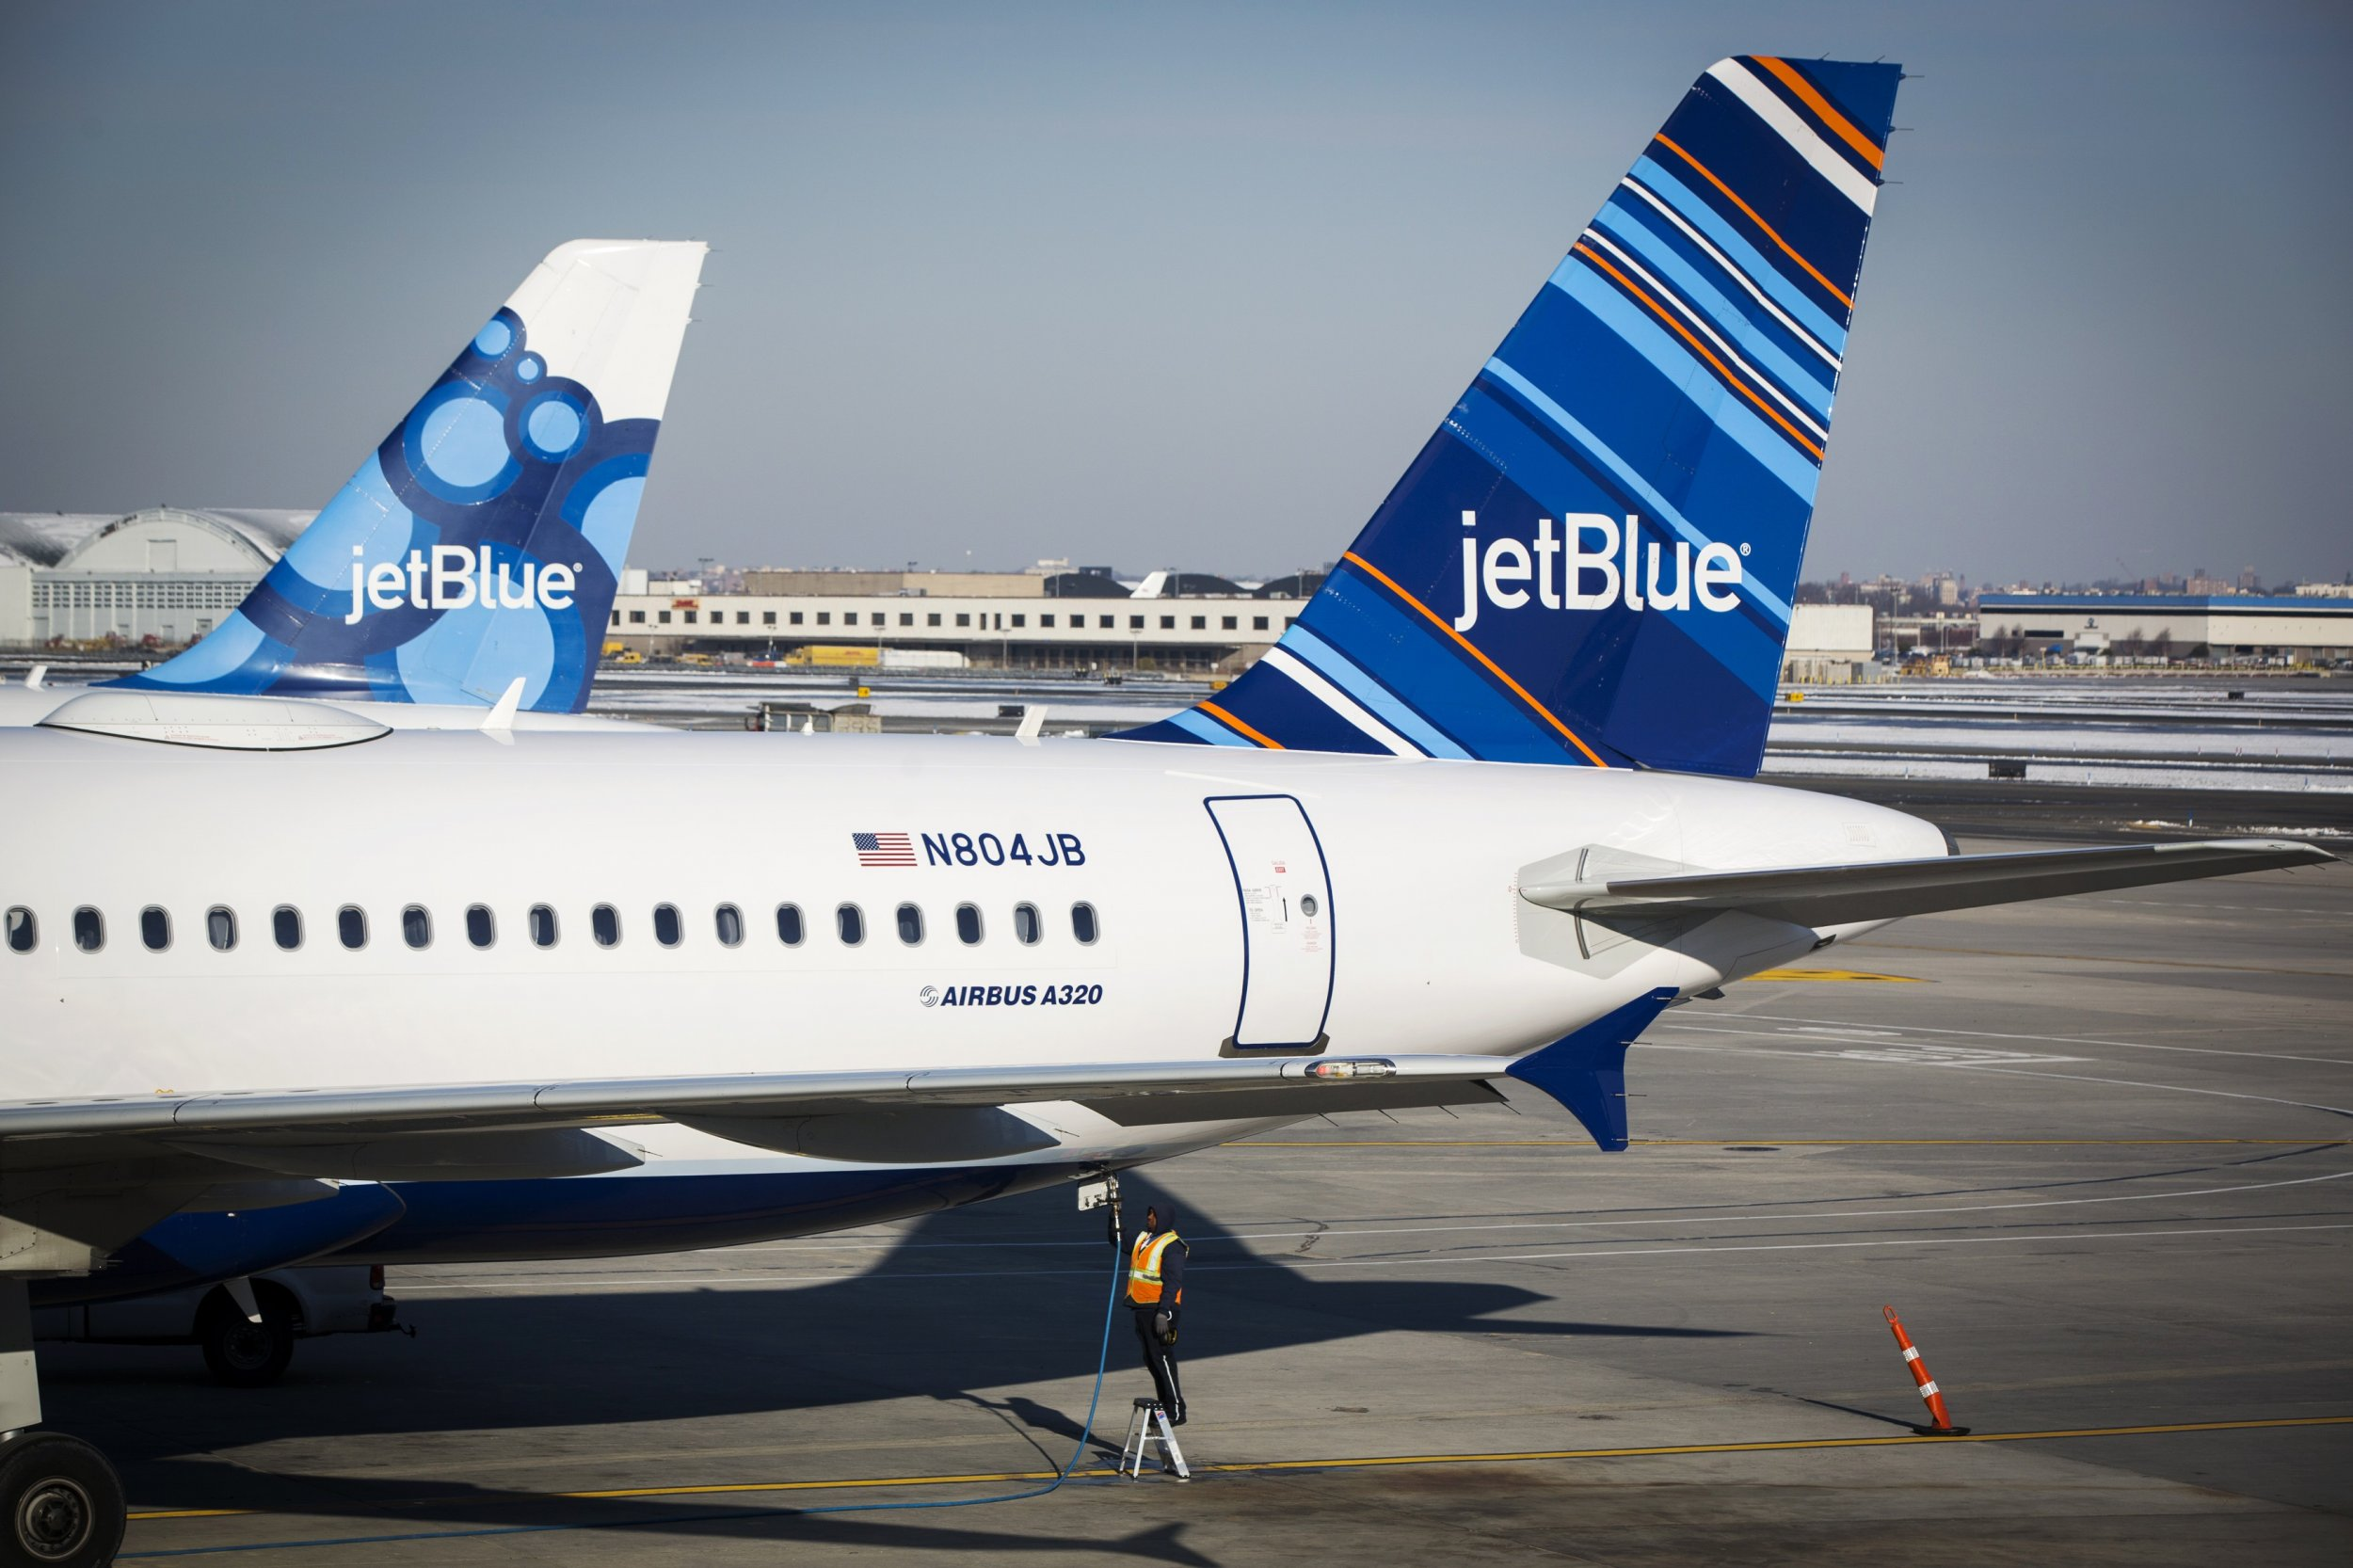 jetblue business culture Jetblue's original business plan called for 11 mint-equipped airplanes, but by the end of this quarter, the airline will have 34, executives said fifteen of the 16 airbus a321s jetblue took.